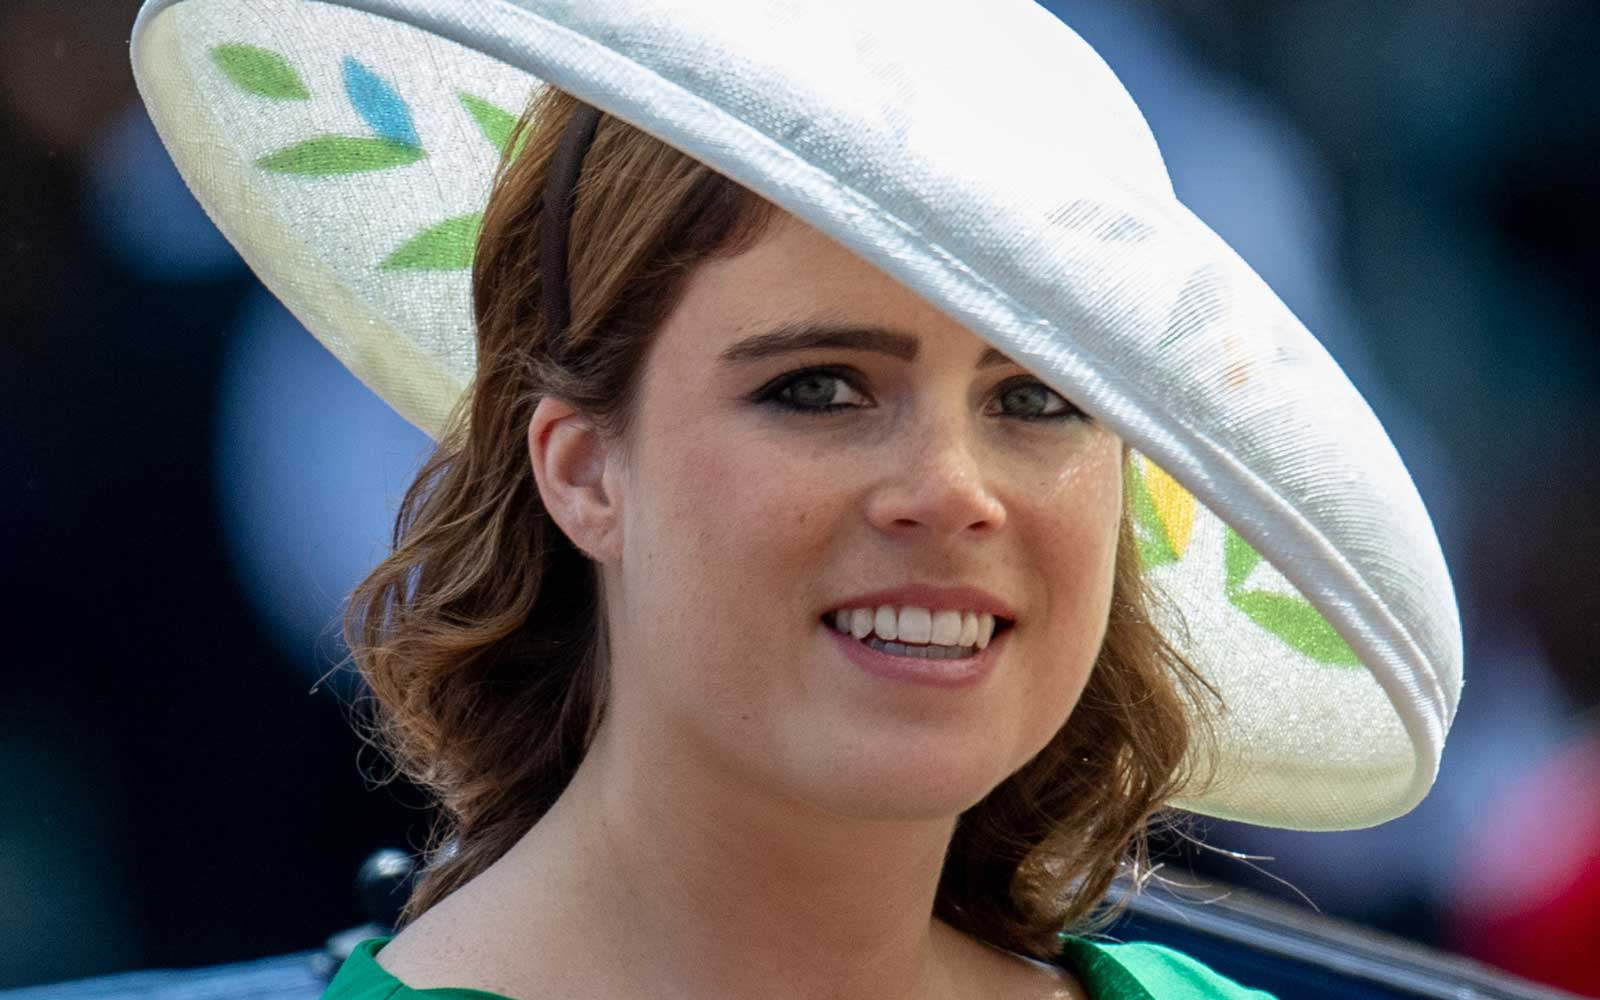 Princess Eugenie during Trooping The Colour 2018 on June 9, 2018